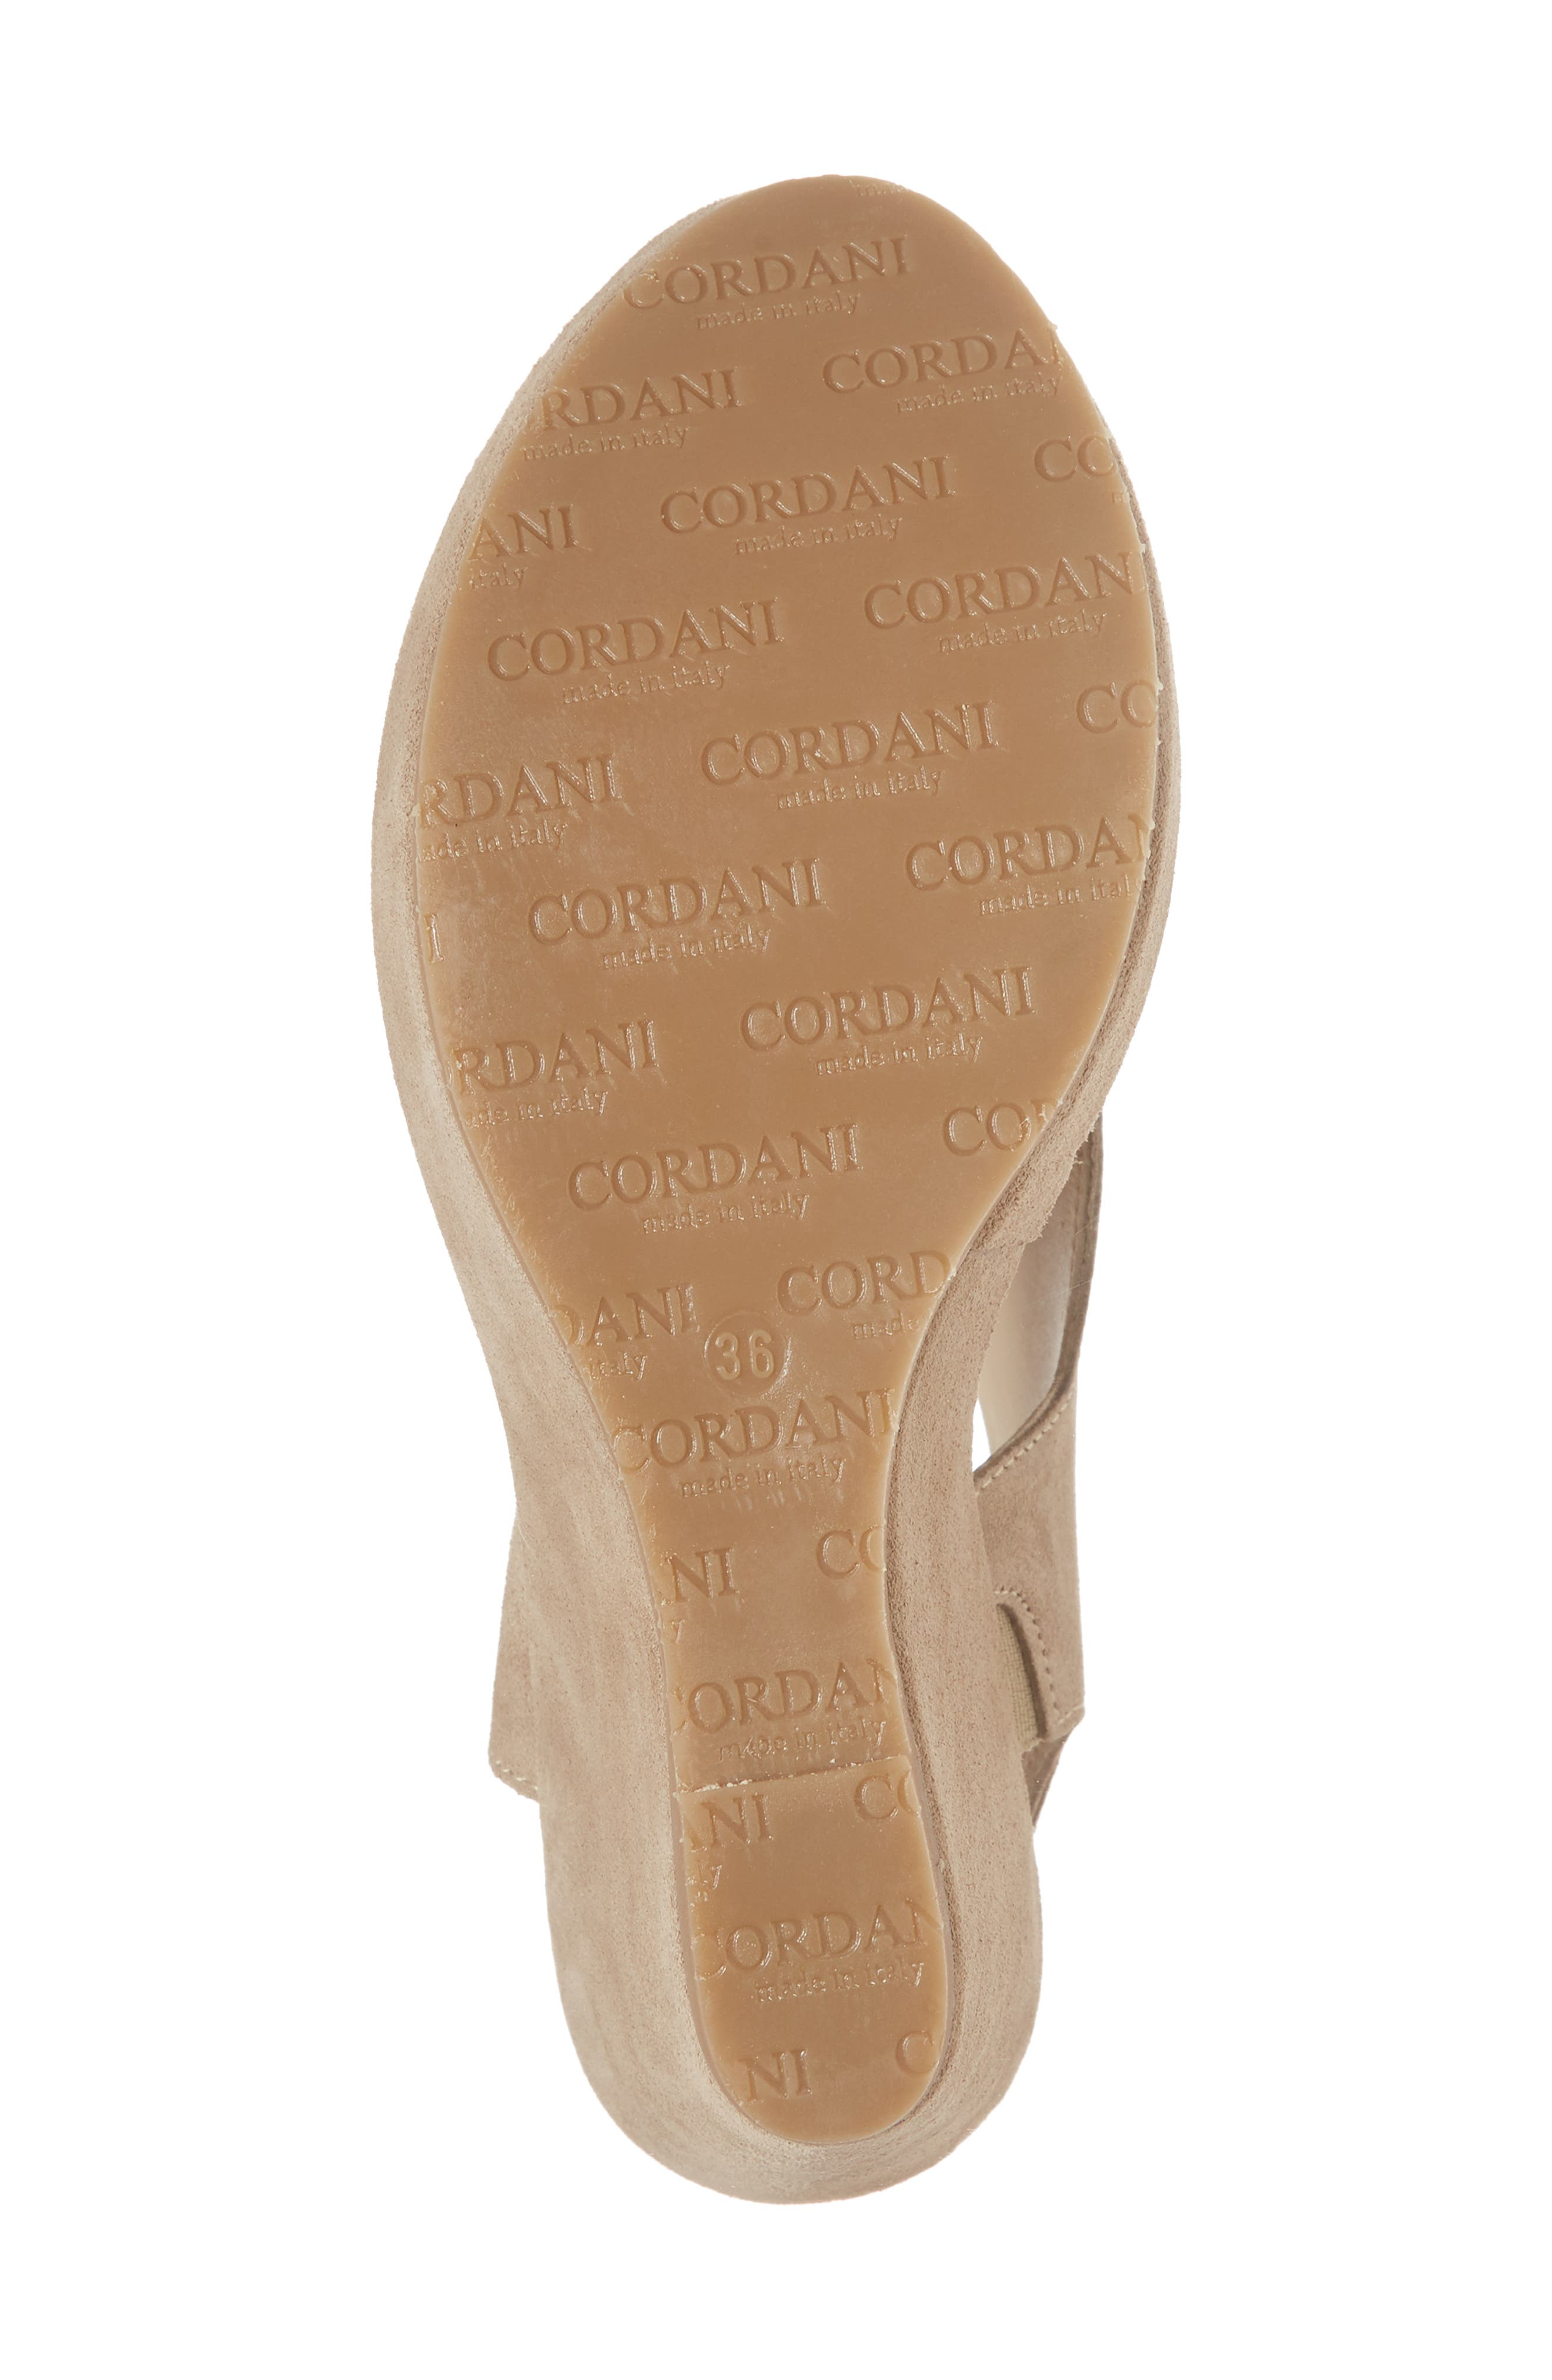 Reed Wedge Sandal,                             Alternate thumbnail 6, color,                             Corda Taupe Suede